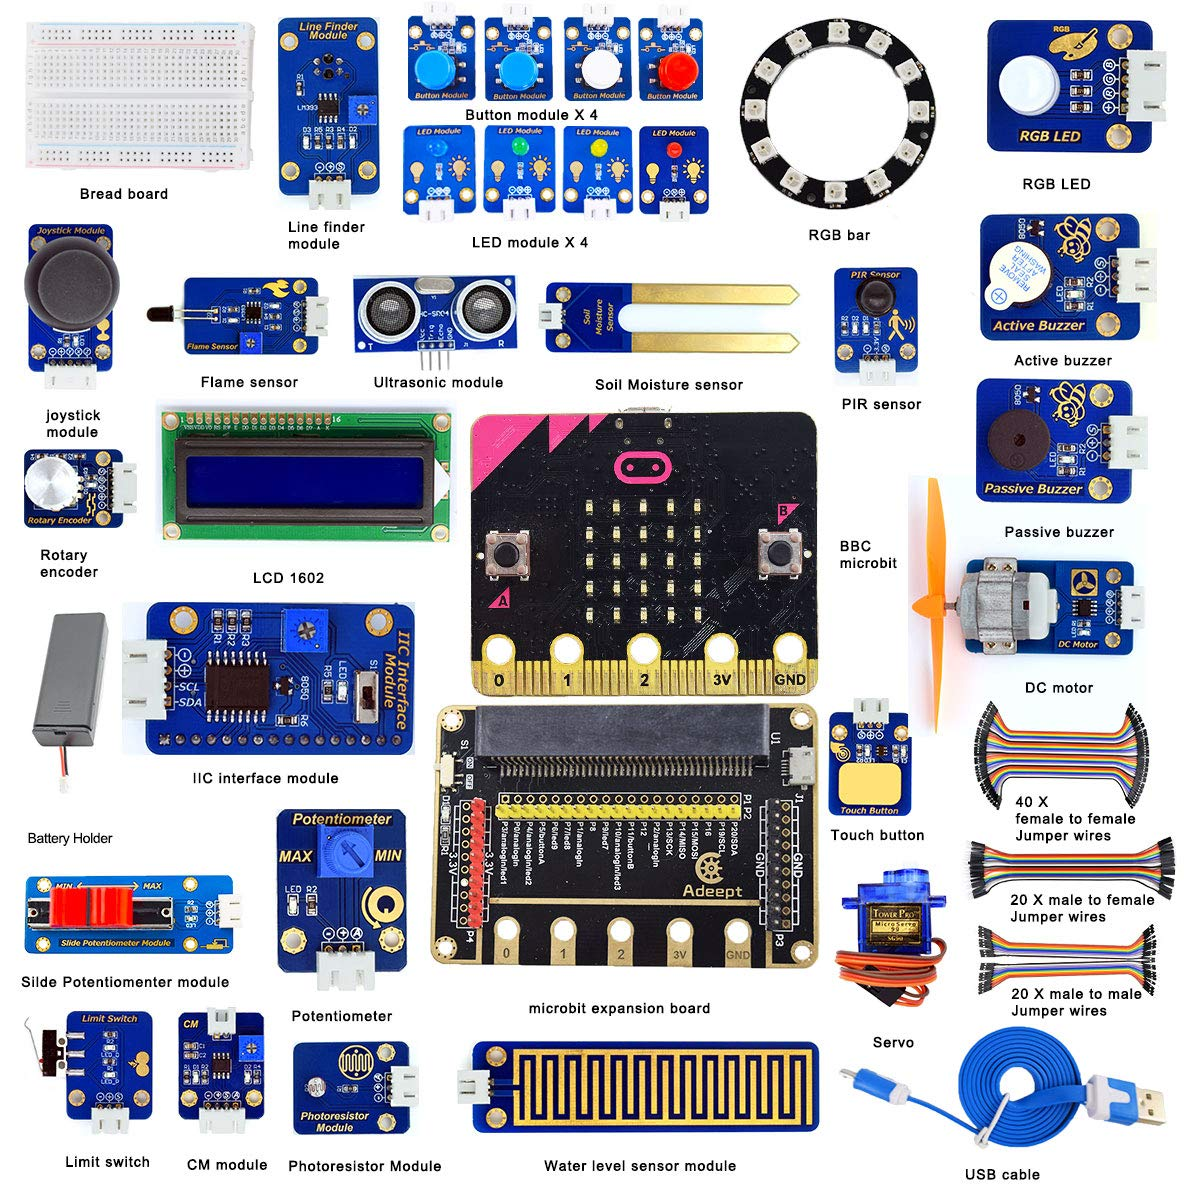 Adeept BBC Micro:bit Sensor Starter Kit Micro:bit and Expansion Board Included Microbit Programmable Starter Kit for Micro:bit with 35 Projects PDF Tutorial Book